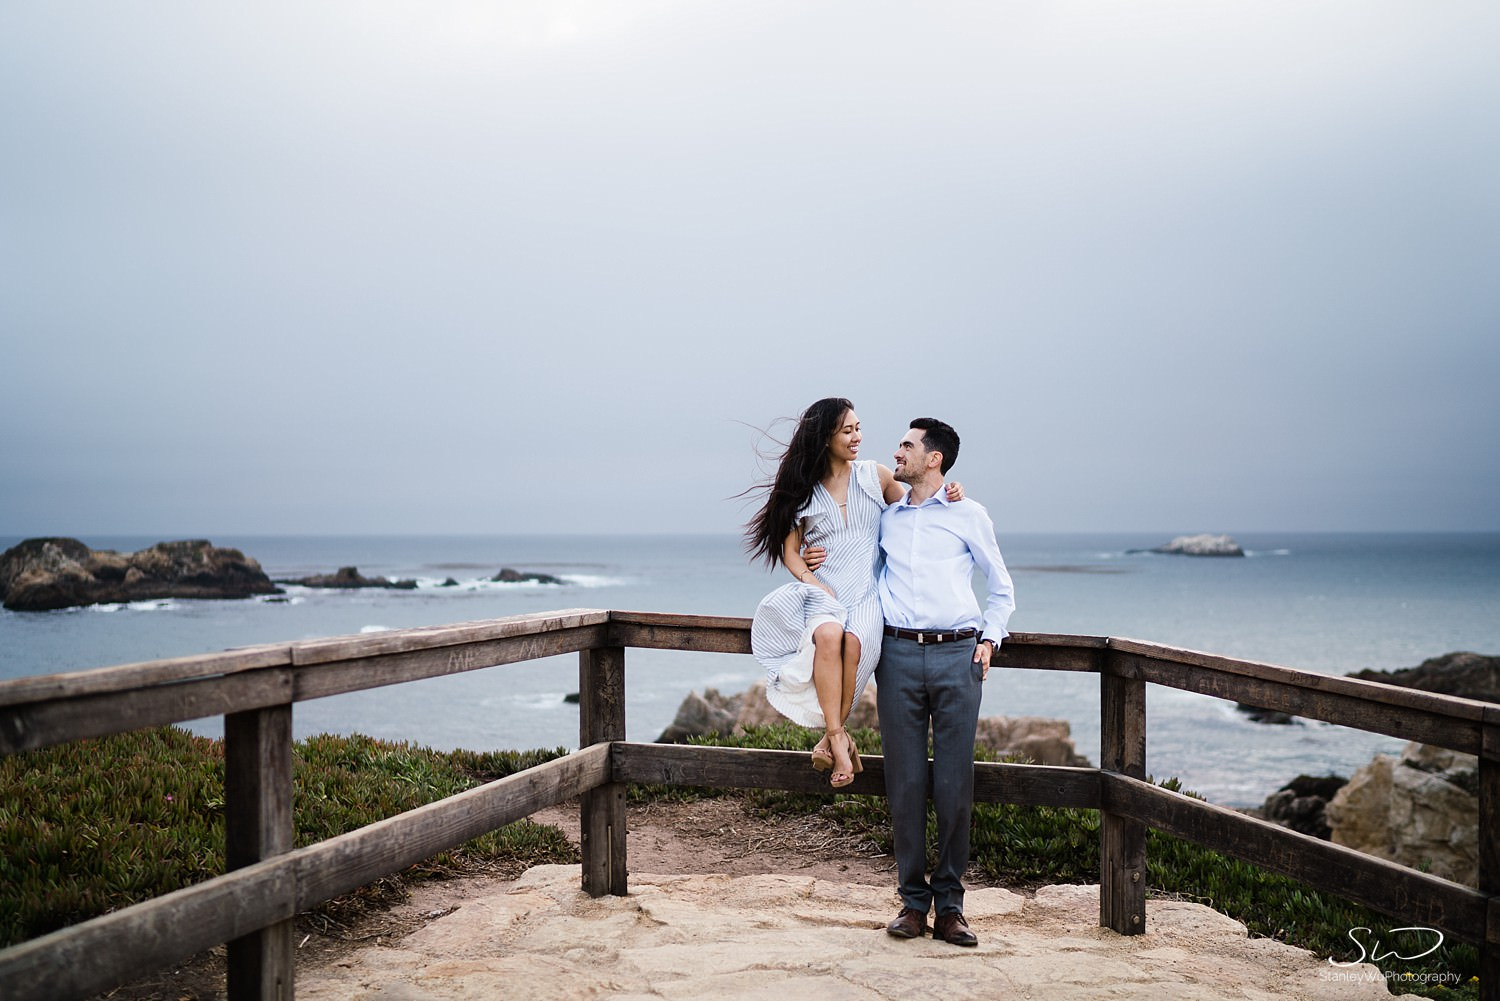 big-sur-travel-adventure-engagement-session_0070.jpg